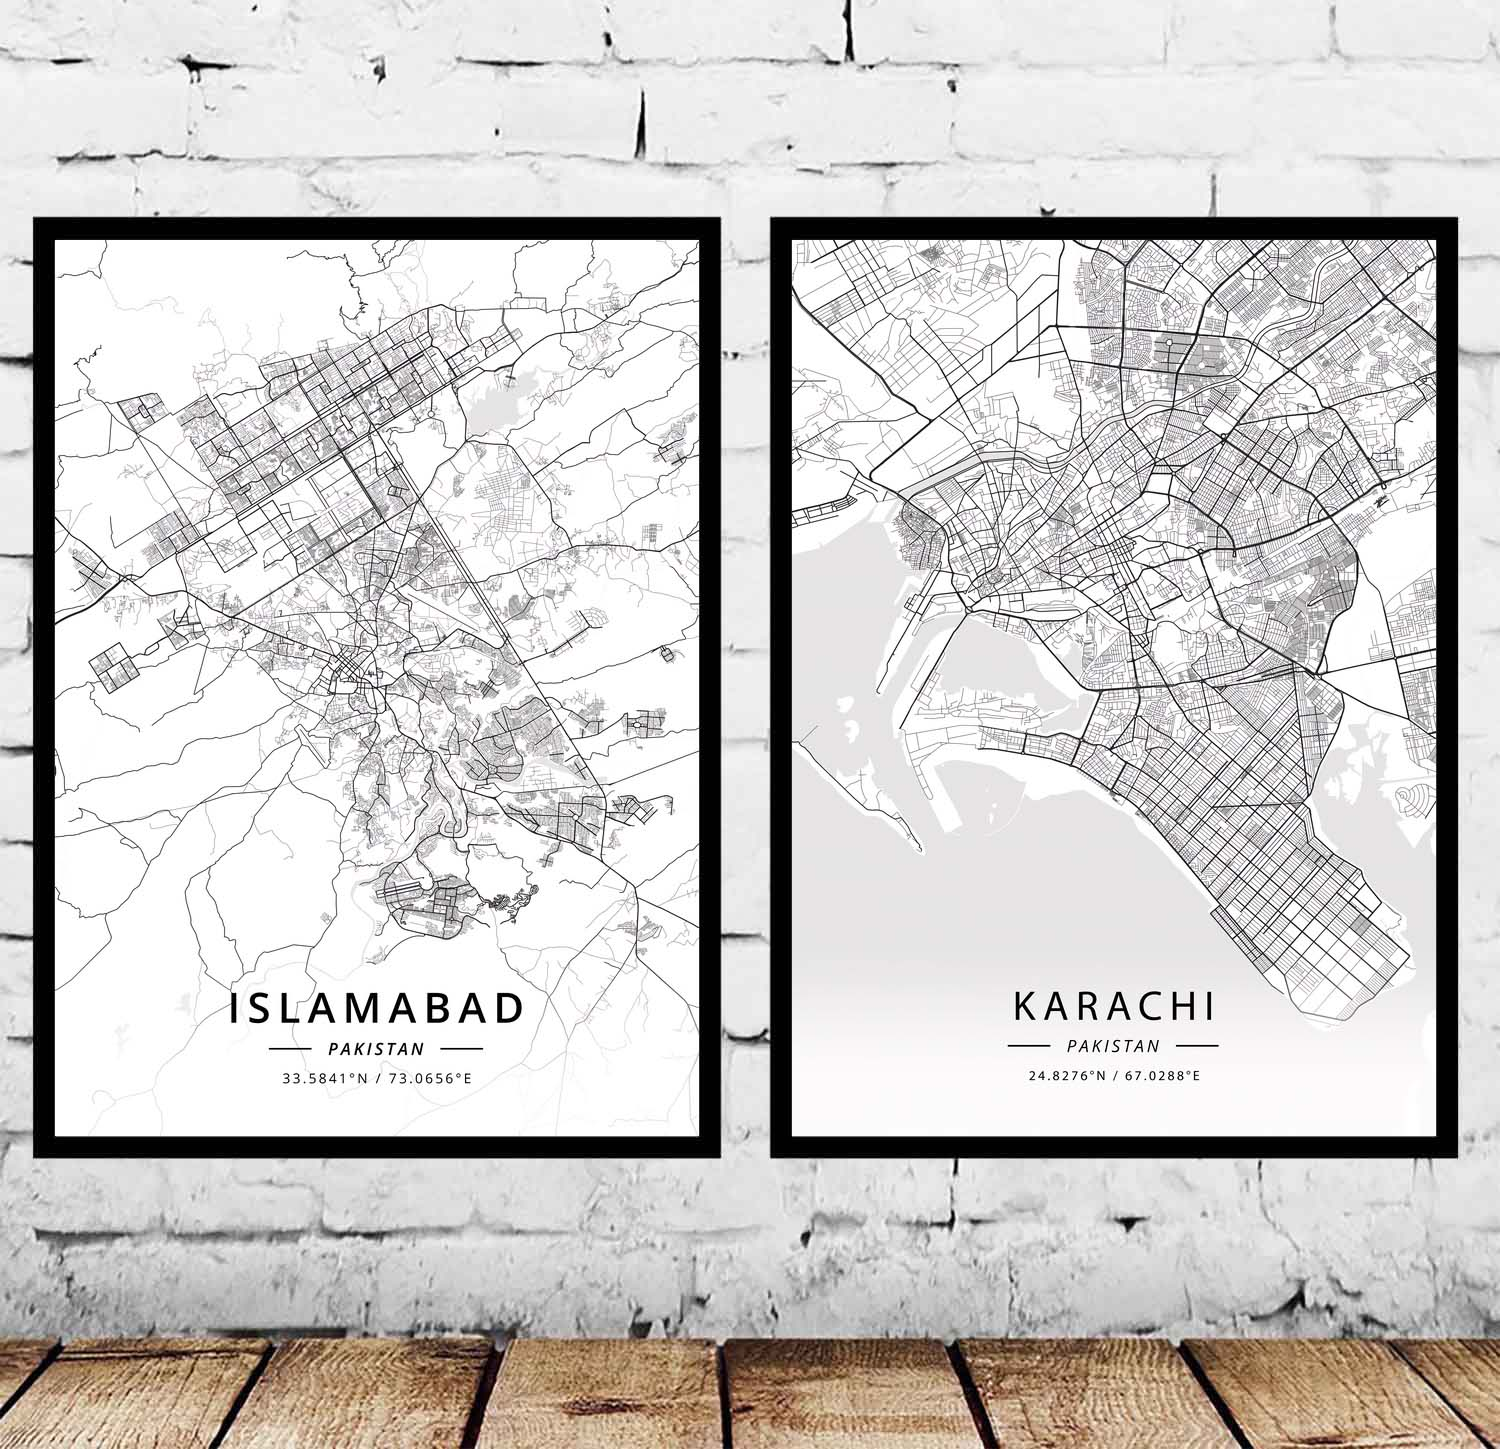 Islamabad Pakistan Map: Islamabad Karachi Pakistan Map Poster-in Painting